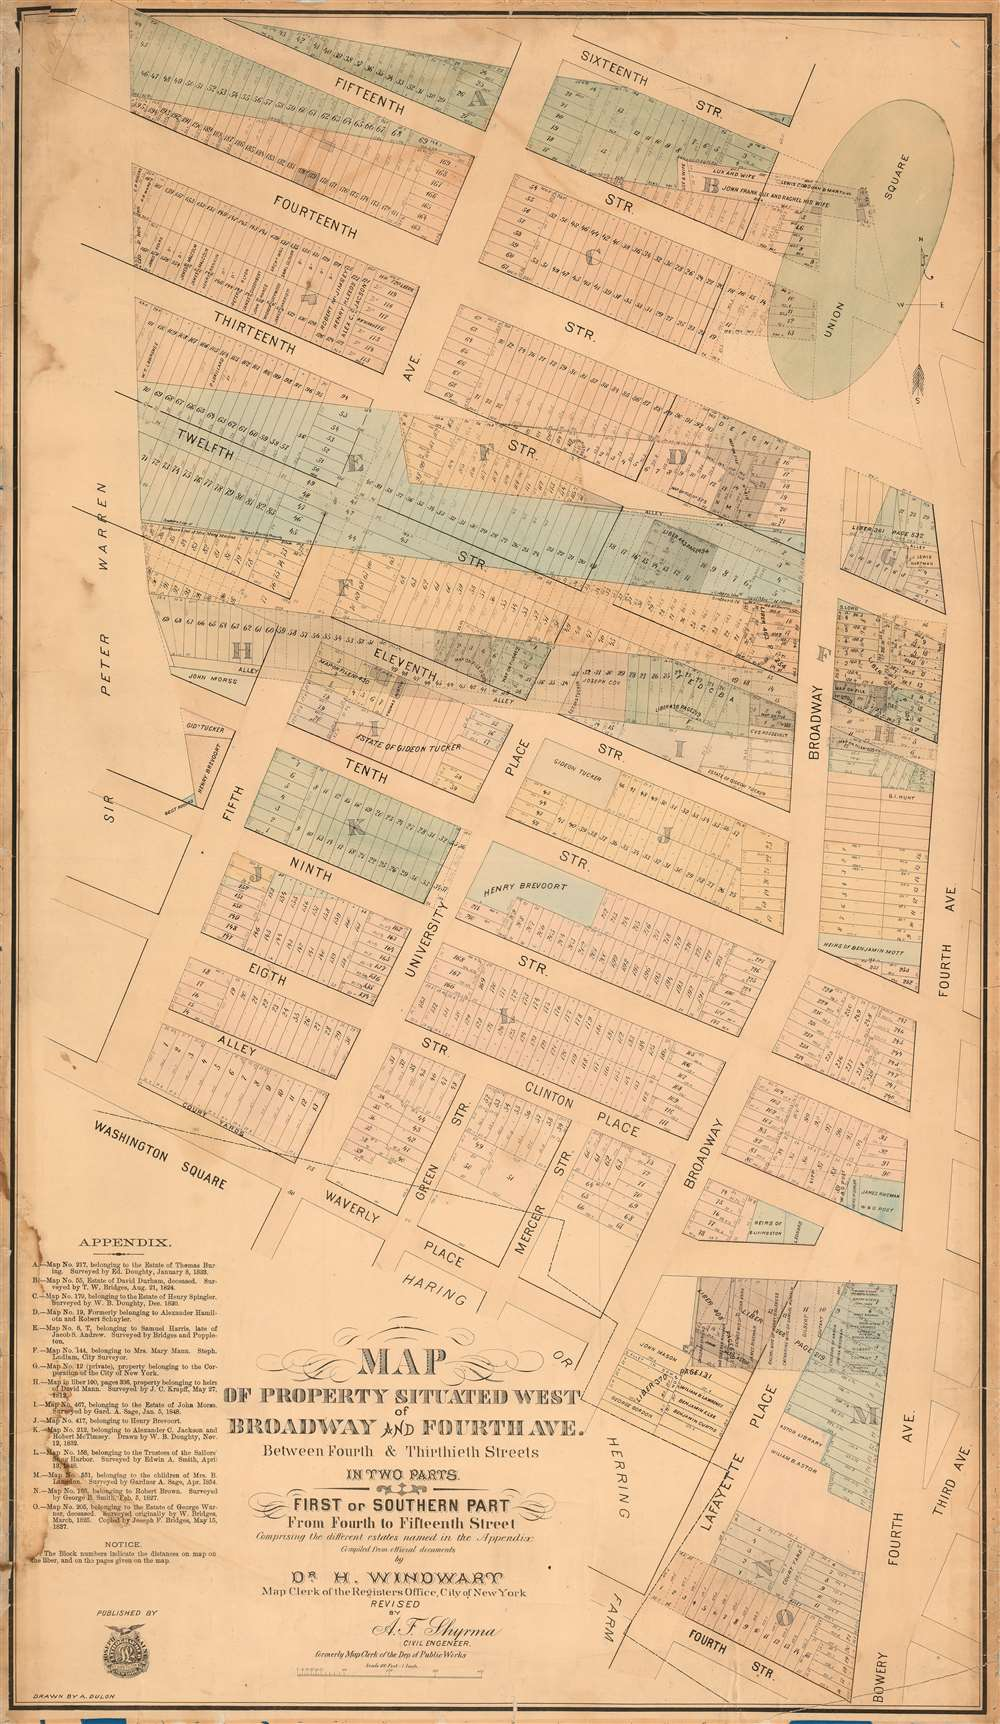 Map of Property Situated West of Broadway and Fourth Ave. Between Fourth and Thitieth Streets in Two Parts. / First or Southern Part From Fourth to Fifteenth Street.